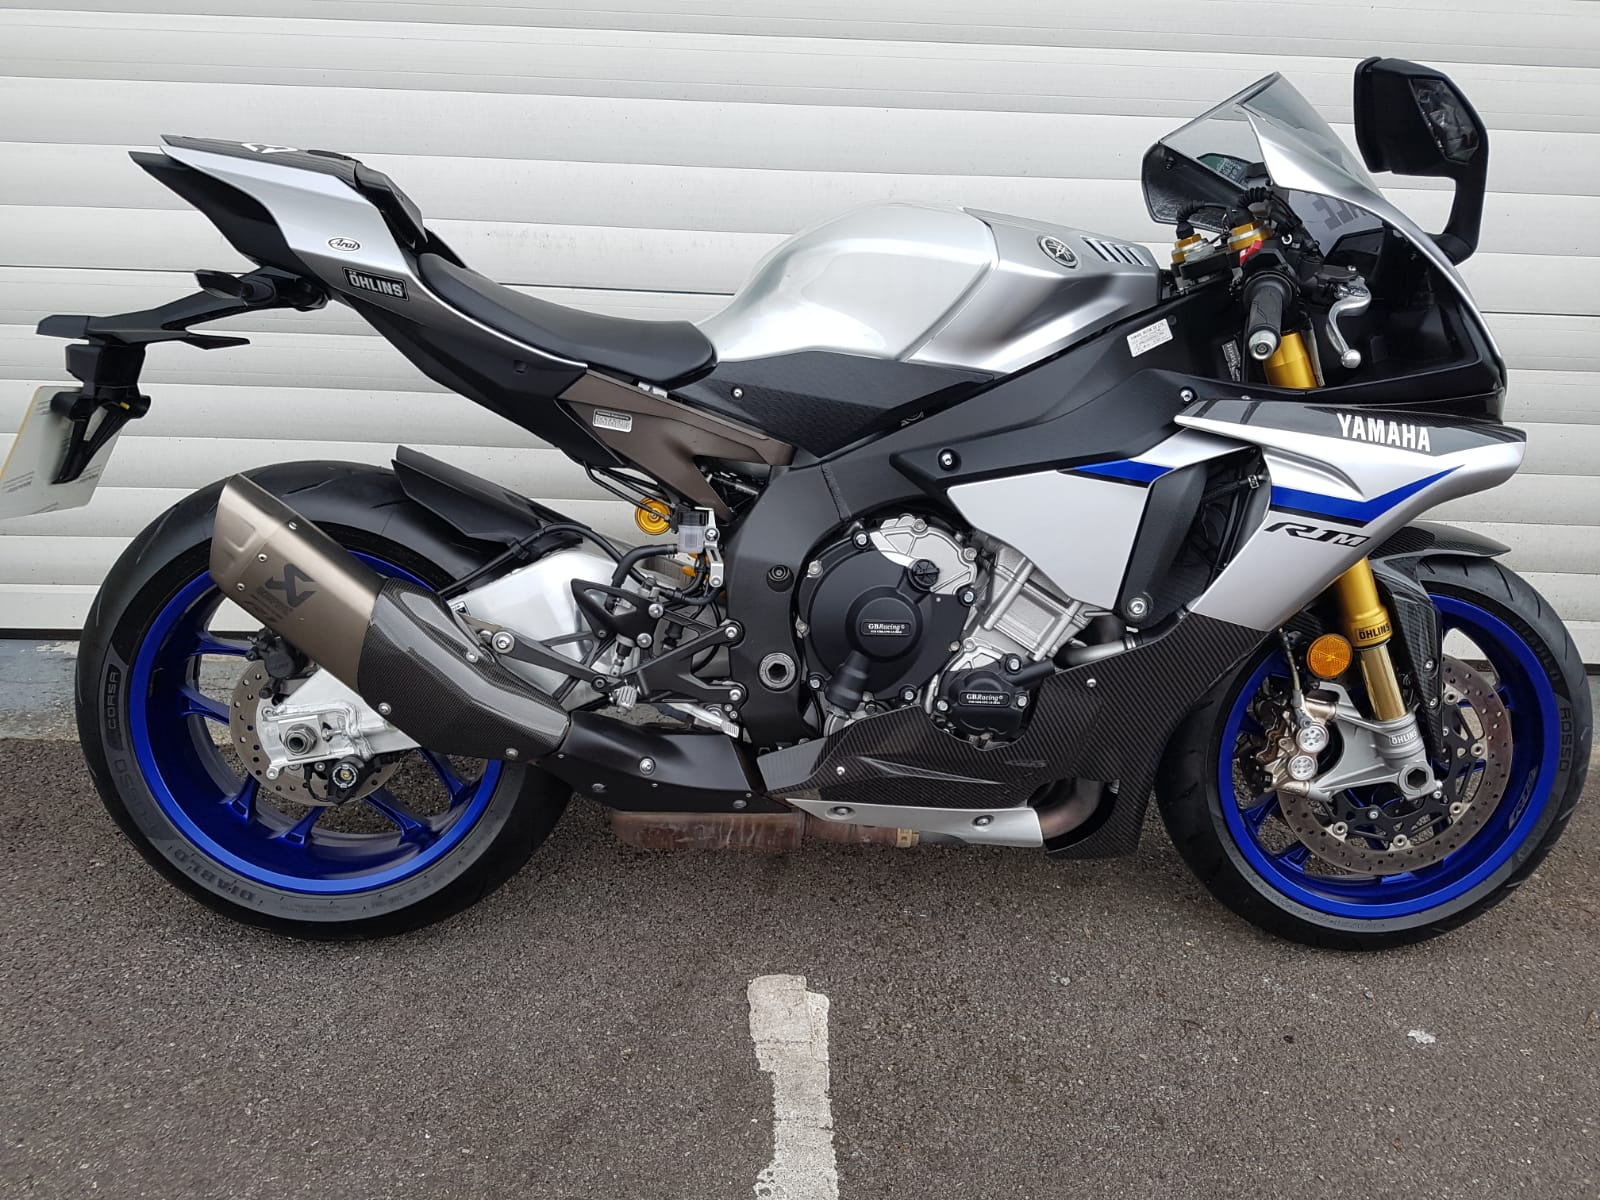 https://www.sjsmotorcycles.co.uk/wp-content/uploads/2019/09/f5abd980-03ca-4fc0-b3cd-85c11f971e44.jpg